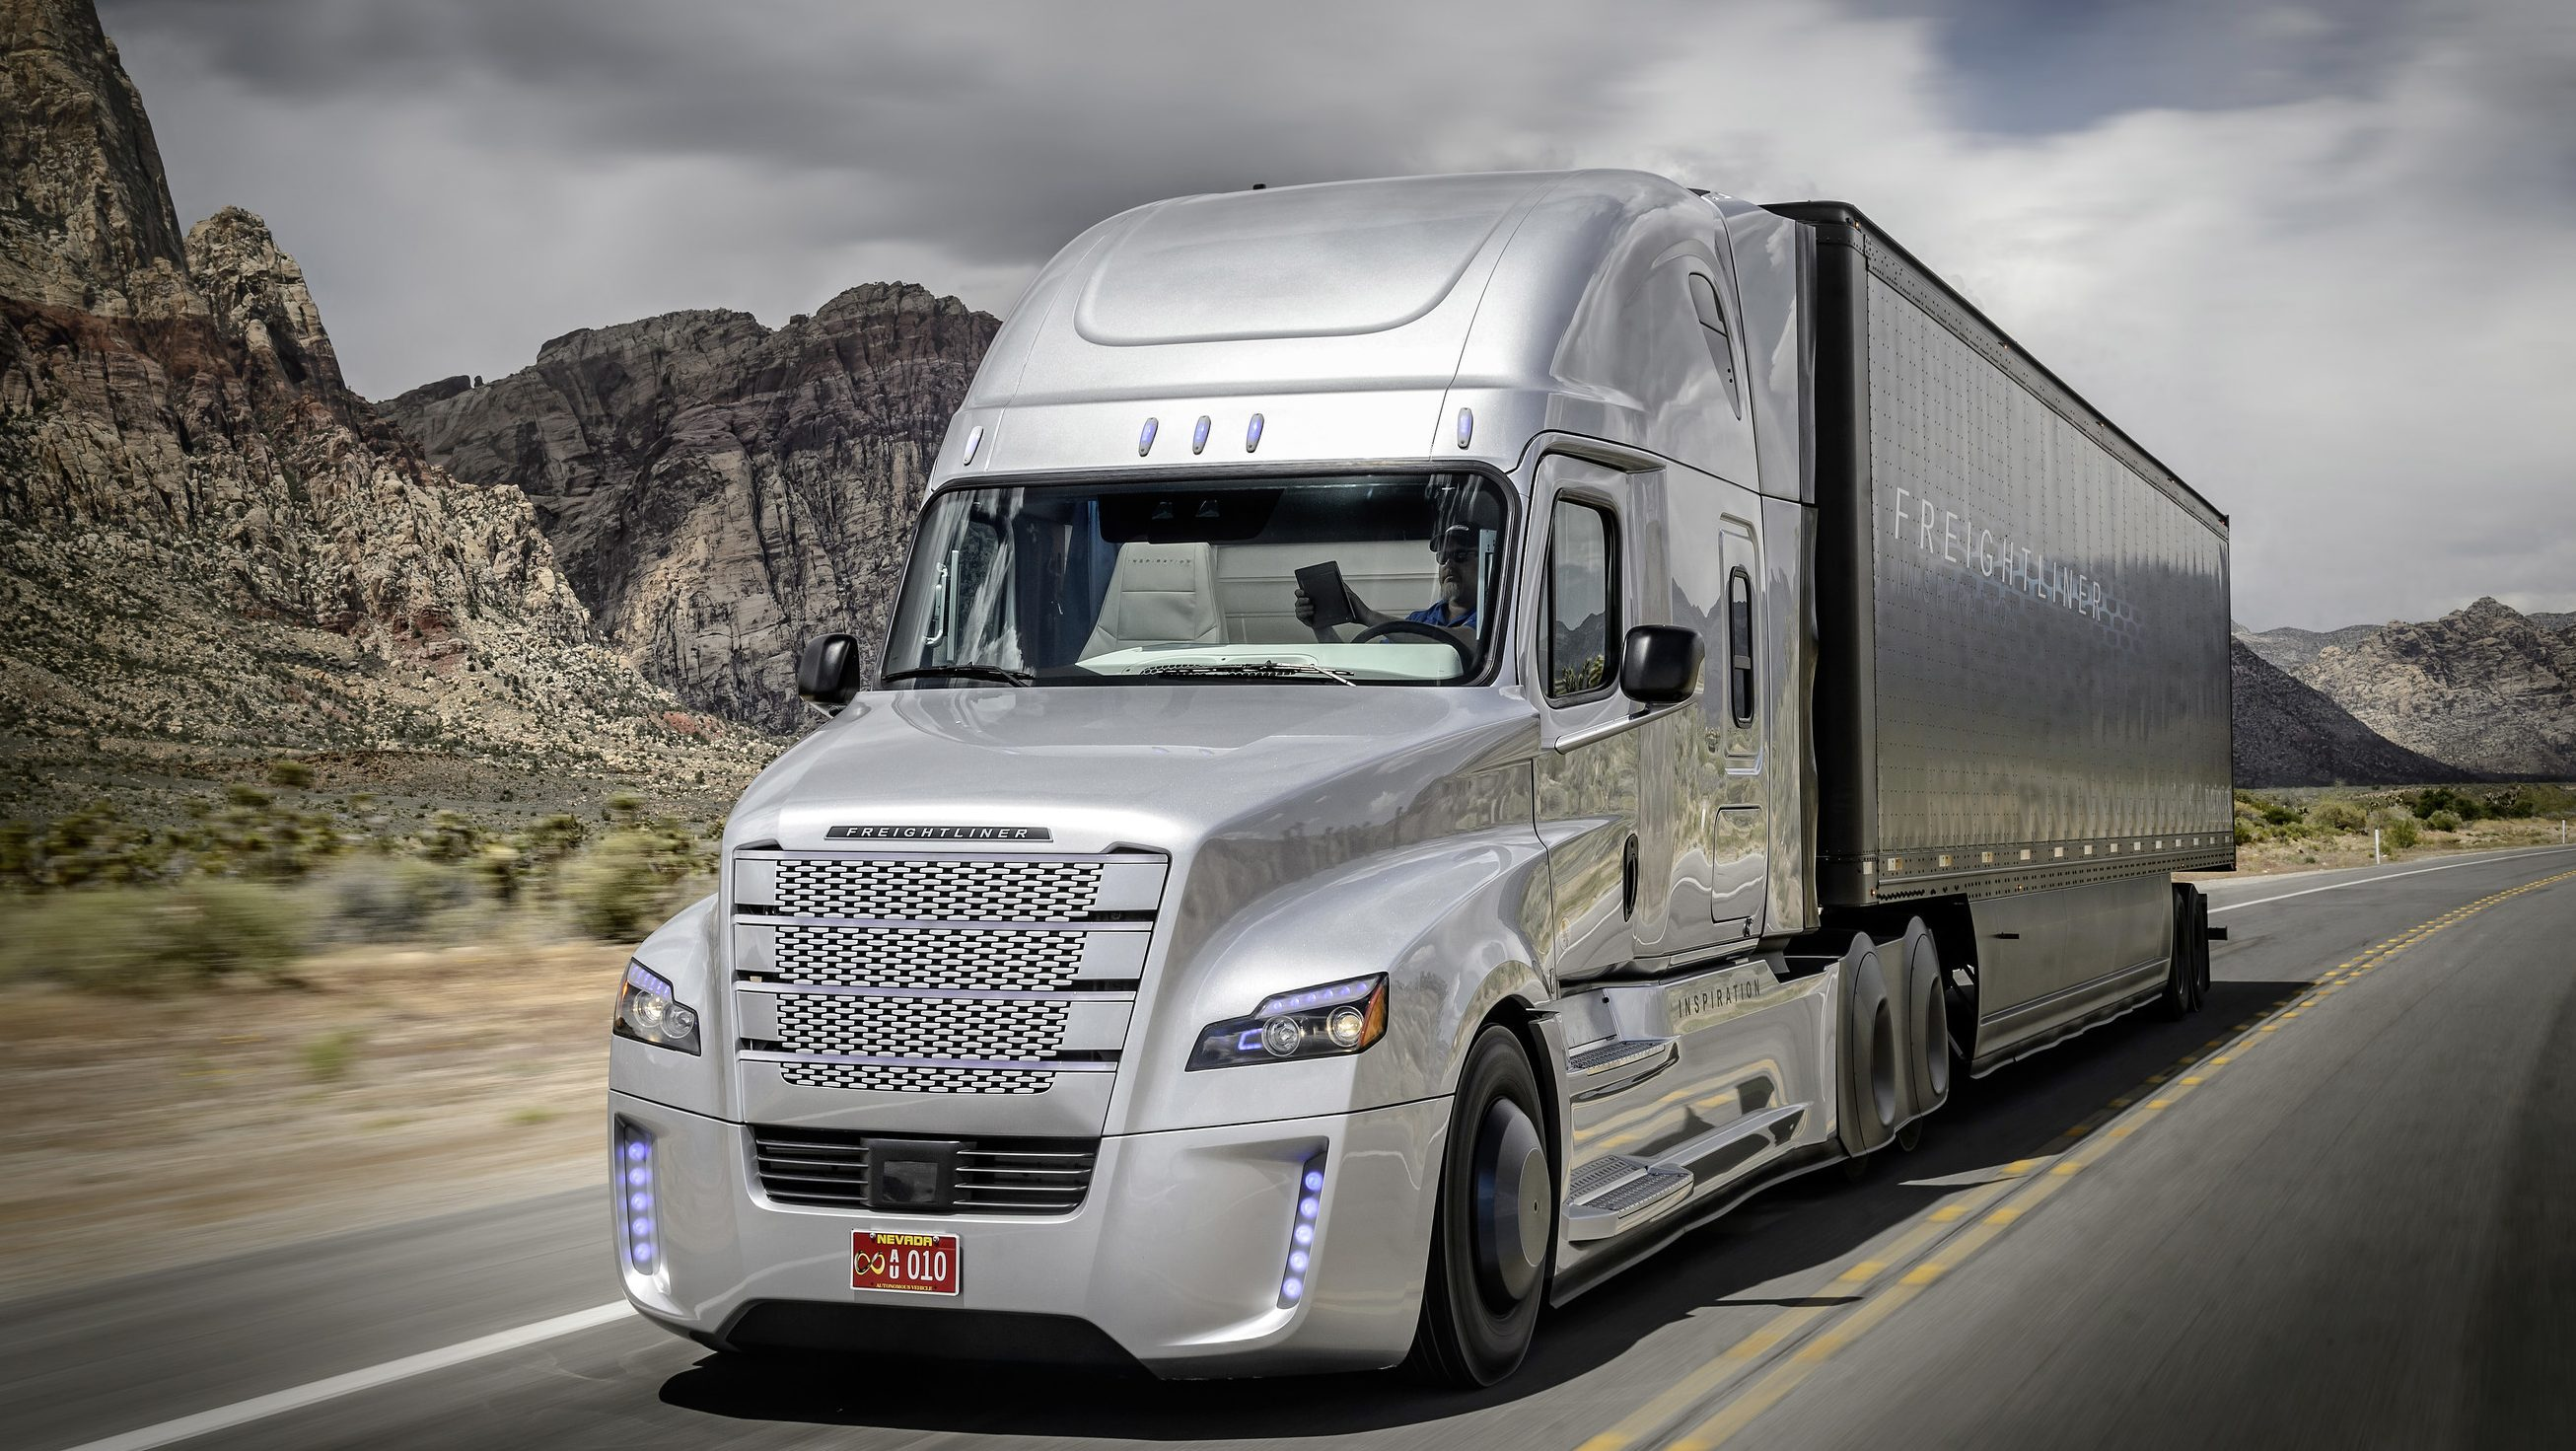 Freightliner Inspiration Truck Unveiled at Hoover Dam. First Licensed Autonomous Commercial Truck to Drive on U.S. Public Highway (PRNewsFoto/Daimler Trucks North America LLC) THIS CONTENT IS PROVIDED BY PRNewsfoto and is for EDITORIAL USE ONLY**